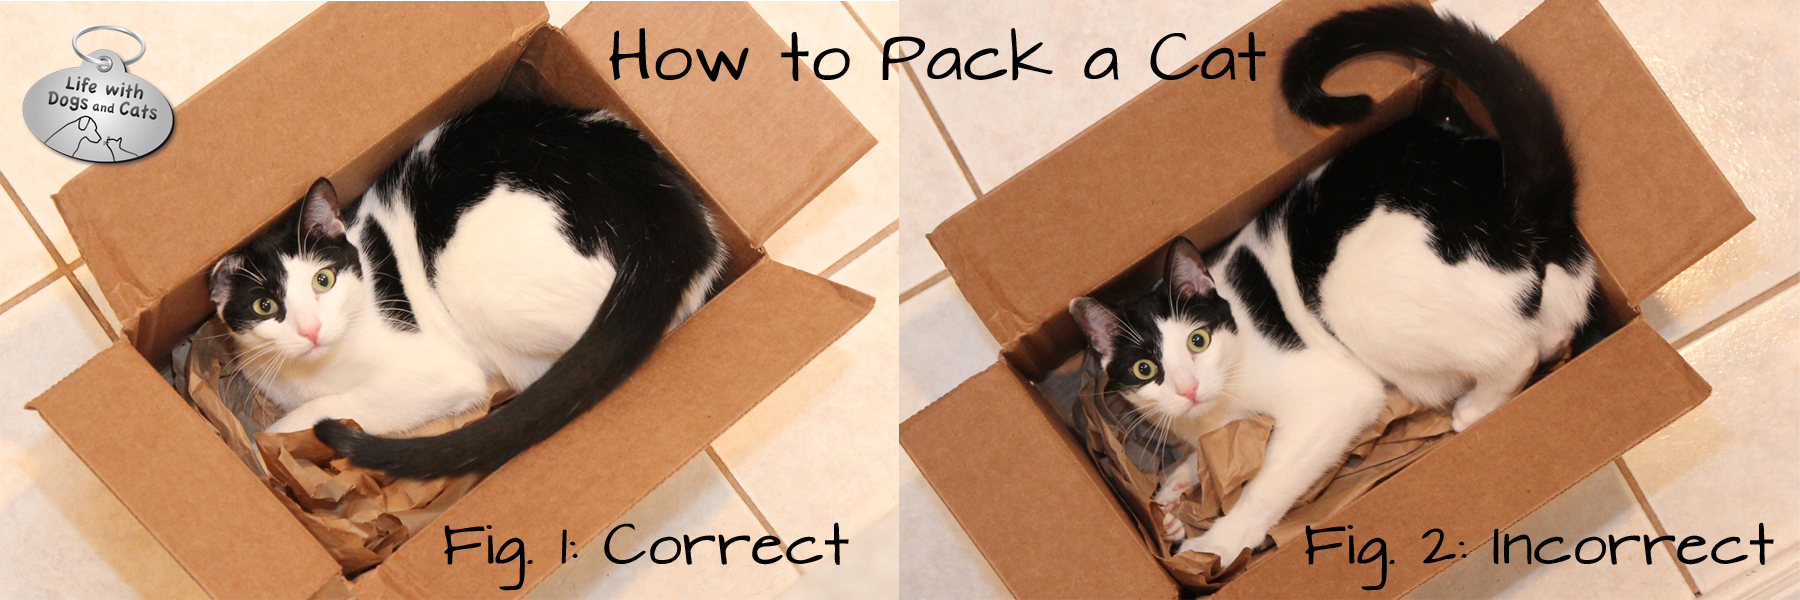 It's important to pack your cat correctly.